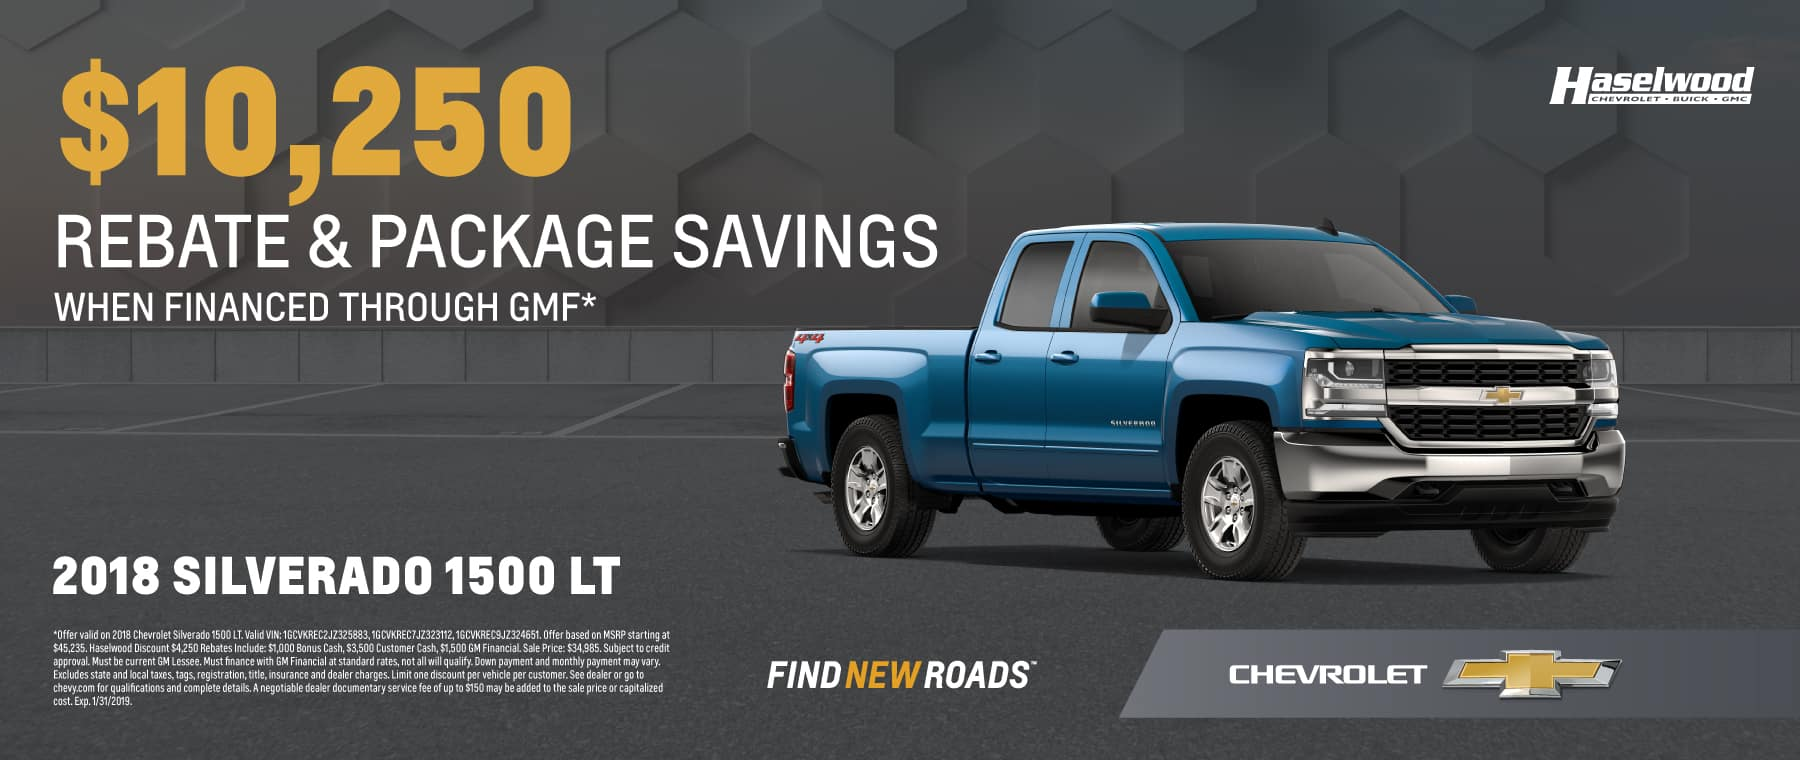 2018 Chevrolet Silverado 1500 LT Starting at MSRP: $45,235 Rebate and Package Savings: $10,250* SALE PRICE: $34,985   *Offer valid on 2018 Chevrolet Silverado 1500 LT. Valid VIN: 1GCVKREC2JZ325883, 1GCVKREC7JZ323112, 1GCVKREC9JZ324651. Offer based on MSRP starting at $45,235. Haselwood Discount $4,250 Rebates Include: $1,000 Bonus Cash, $3,500 Customer Cash, $1,500 GM Financial. Sale Price: $34,985. Subject to credit approval. Must be current GM Lessee. Must finance with GM Financial at standard rates, not all will qualify. Down payment and monthly payment may vary. Excludes state and local taxes, tags, registration, title, insurance and dealer charges. Limit one discount per vehicle per customer. See dealer or go to chevy.com for qualifications and complete details. A negotiable dealer documentary service fee of up to $150 may be added to the sale price or capitalized cost. Exp. 1/31/2019.